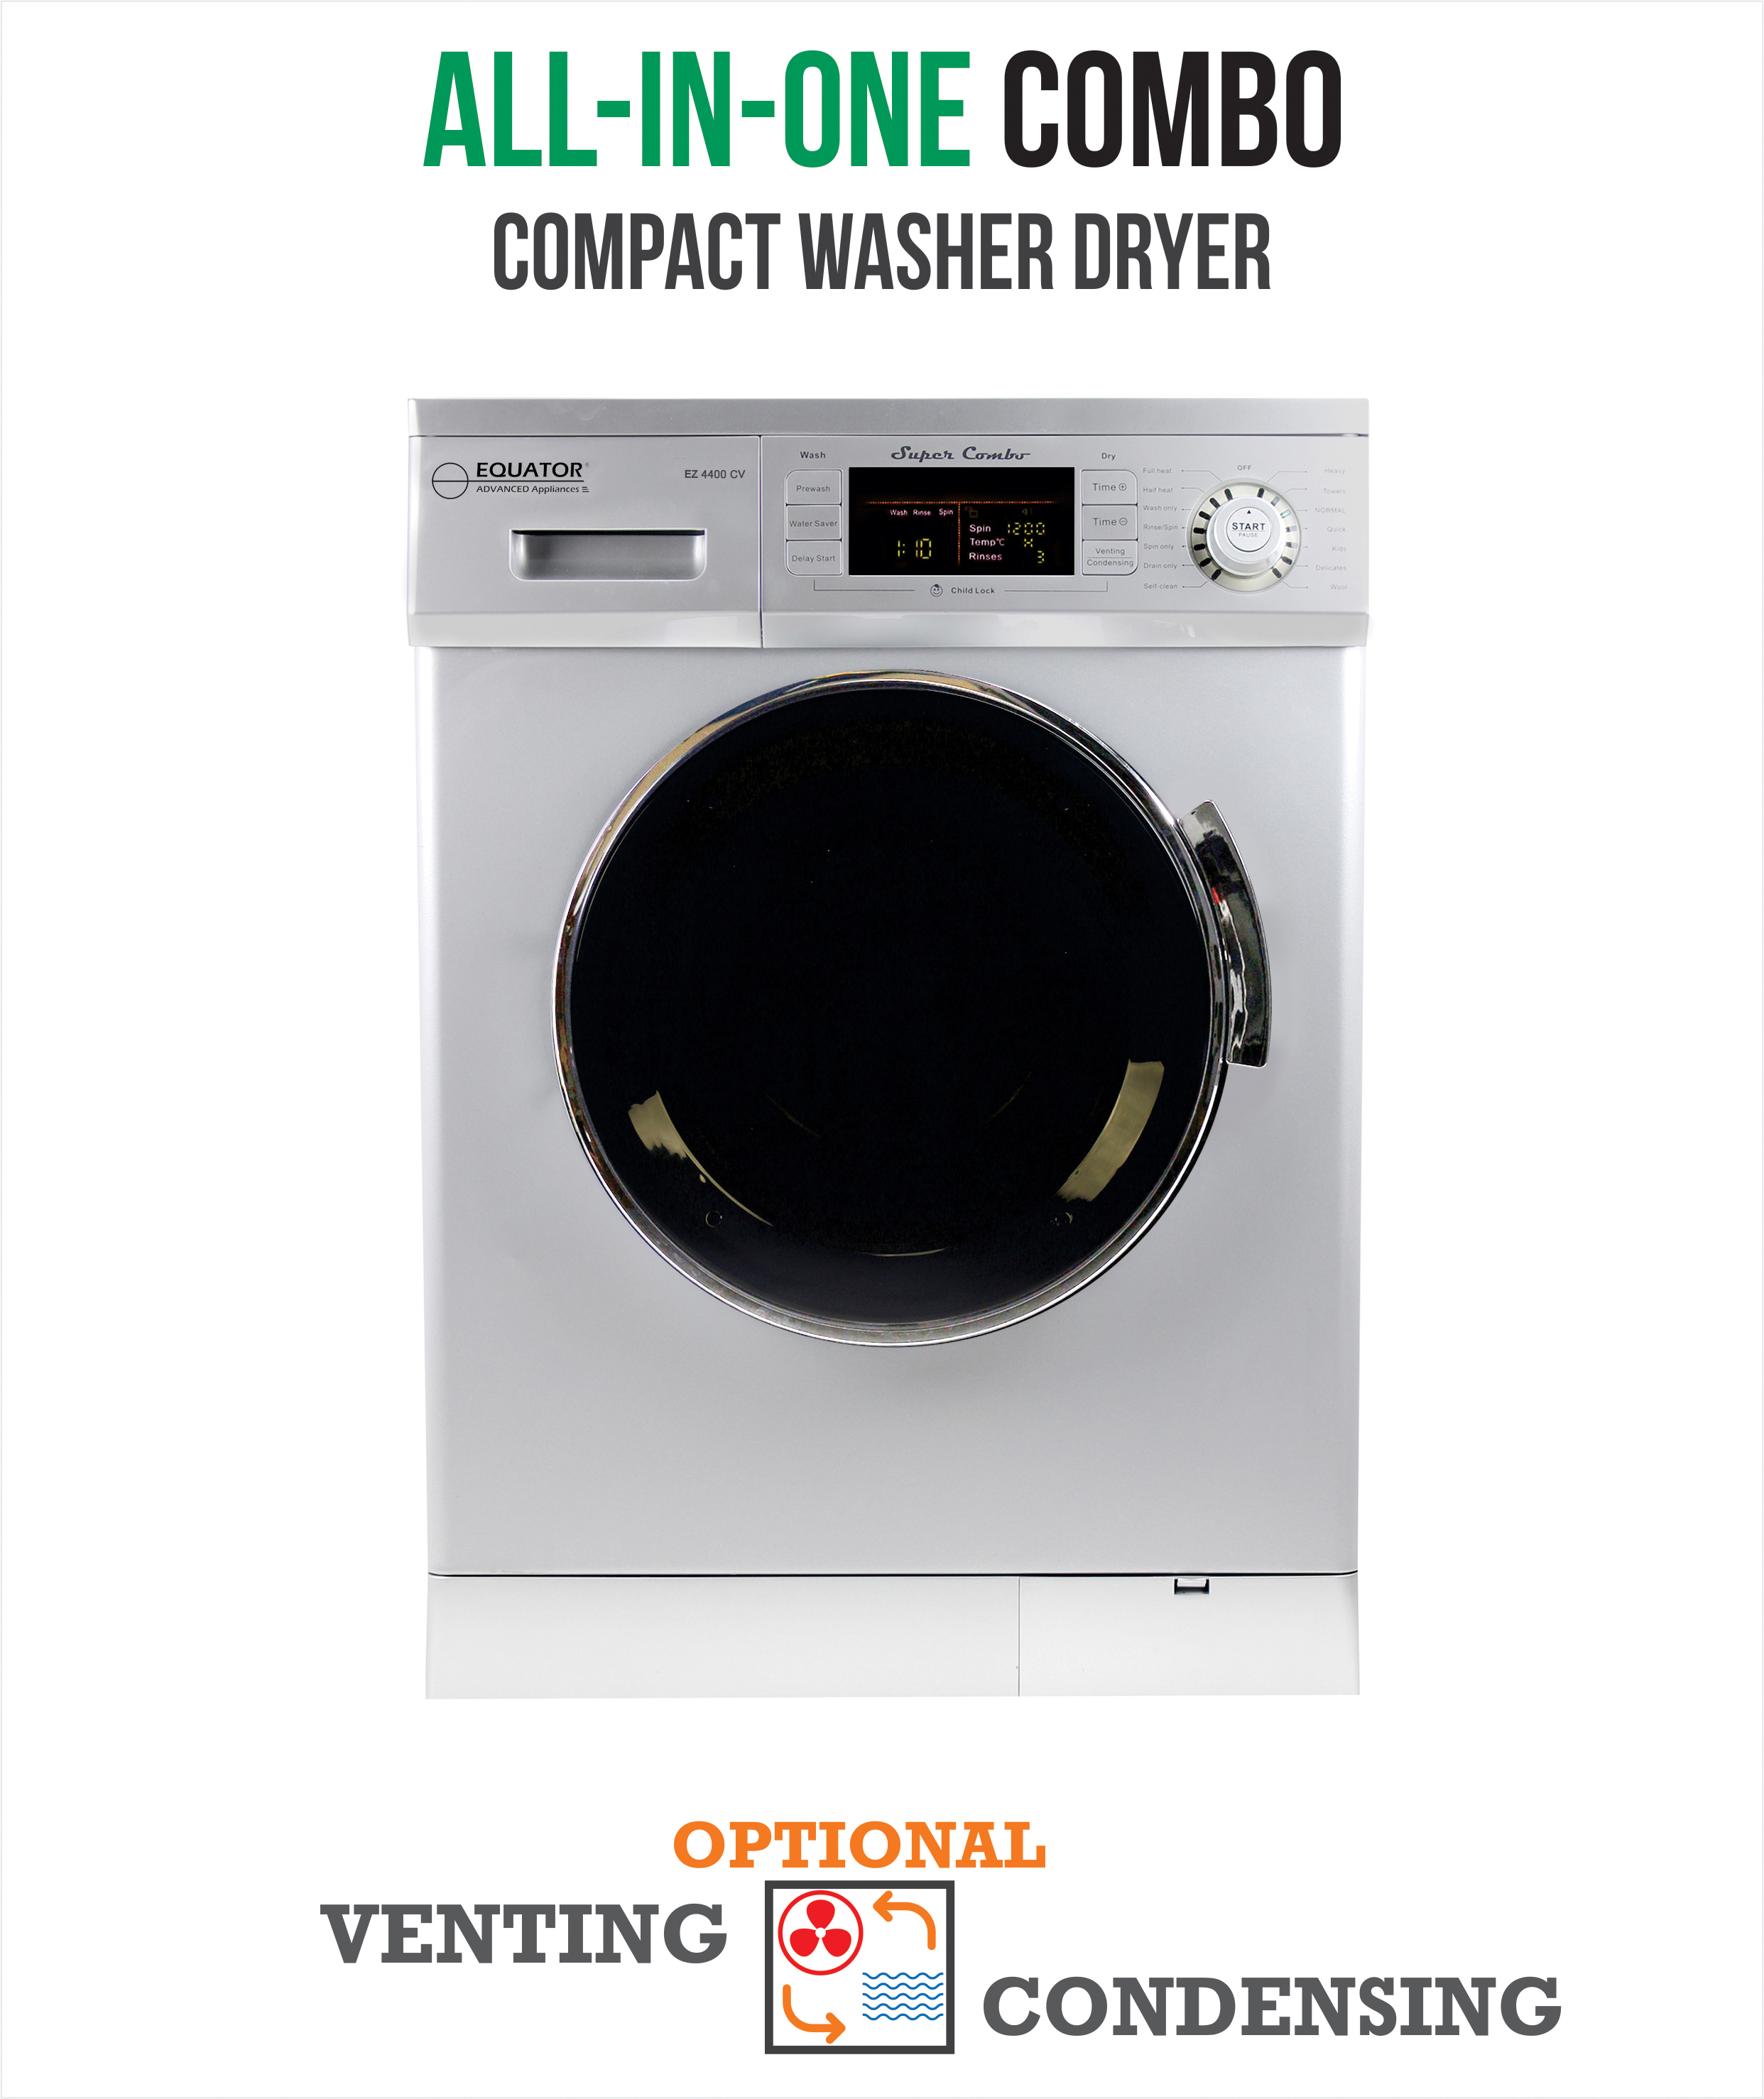 All-in-One 13 lb. 1200 RPM Compact Combo Washer Dryer with Optional Condensing/ Venting, Sensor Dry, Auto Water Level, Silver.